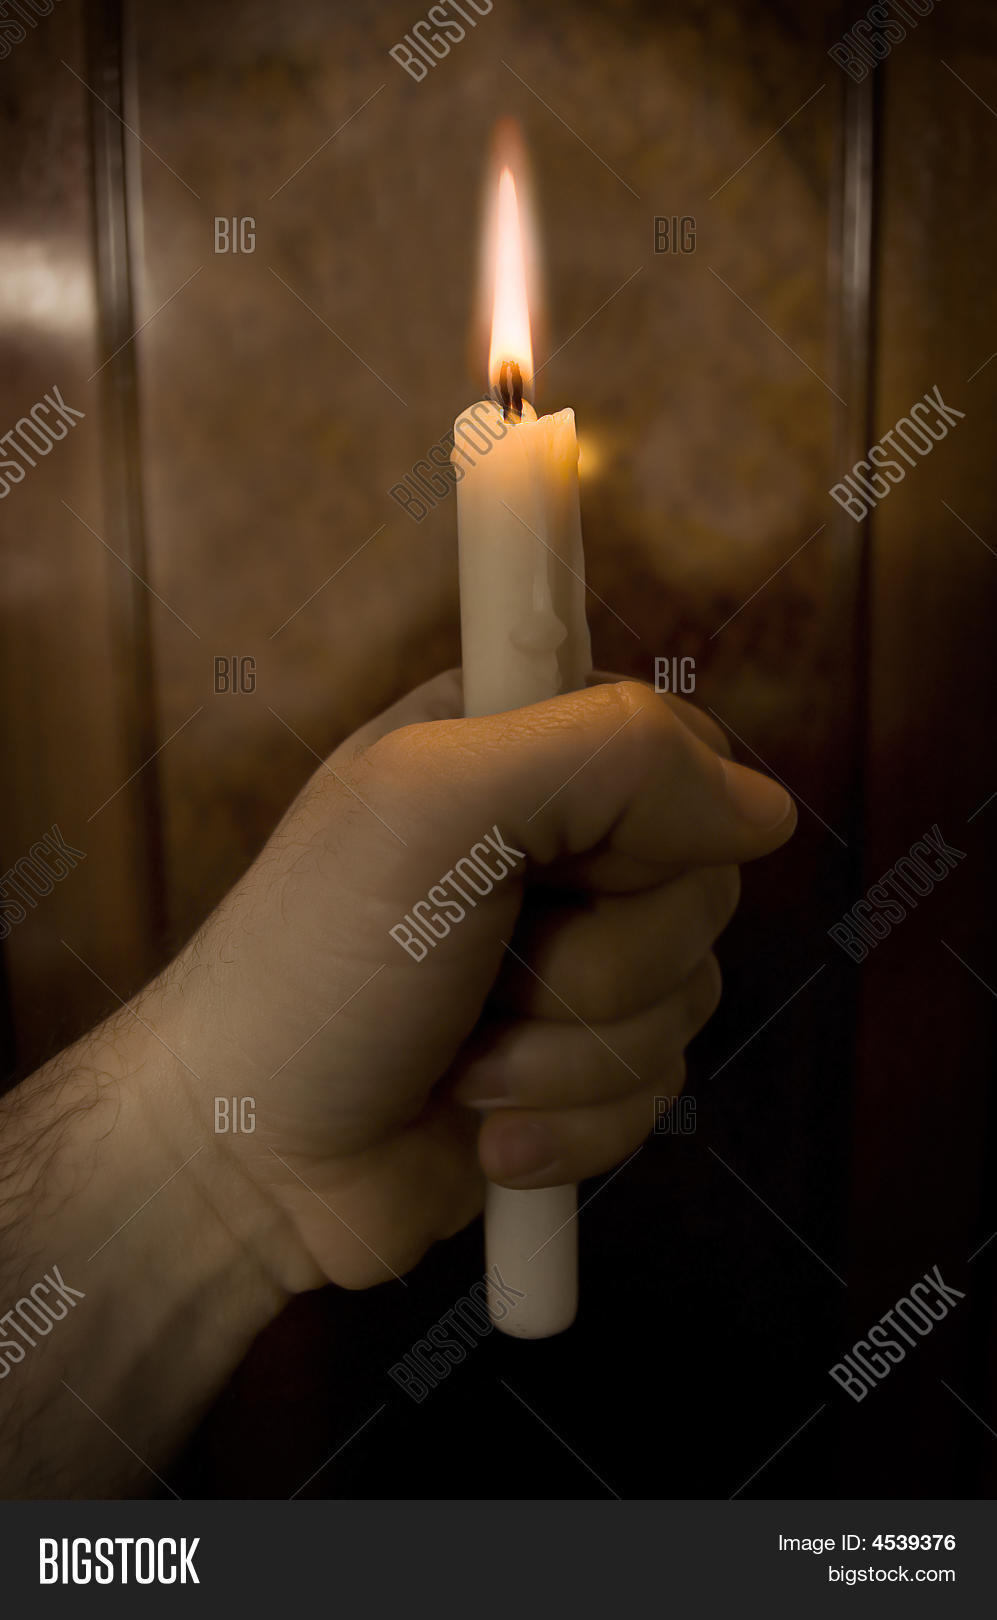 Holding Candle Dark Image  for Holding Candle In The Dark  35fsj